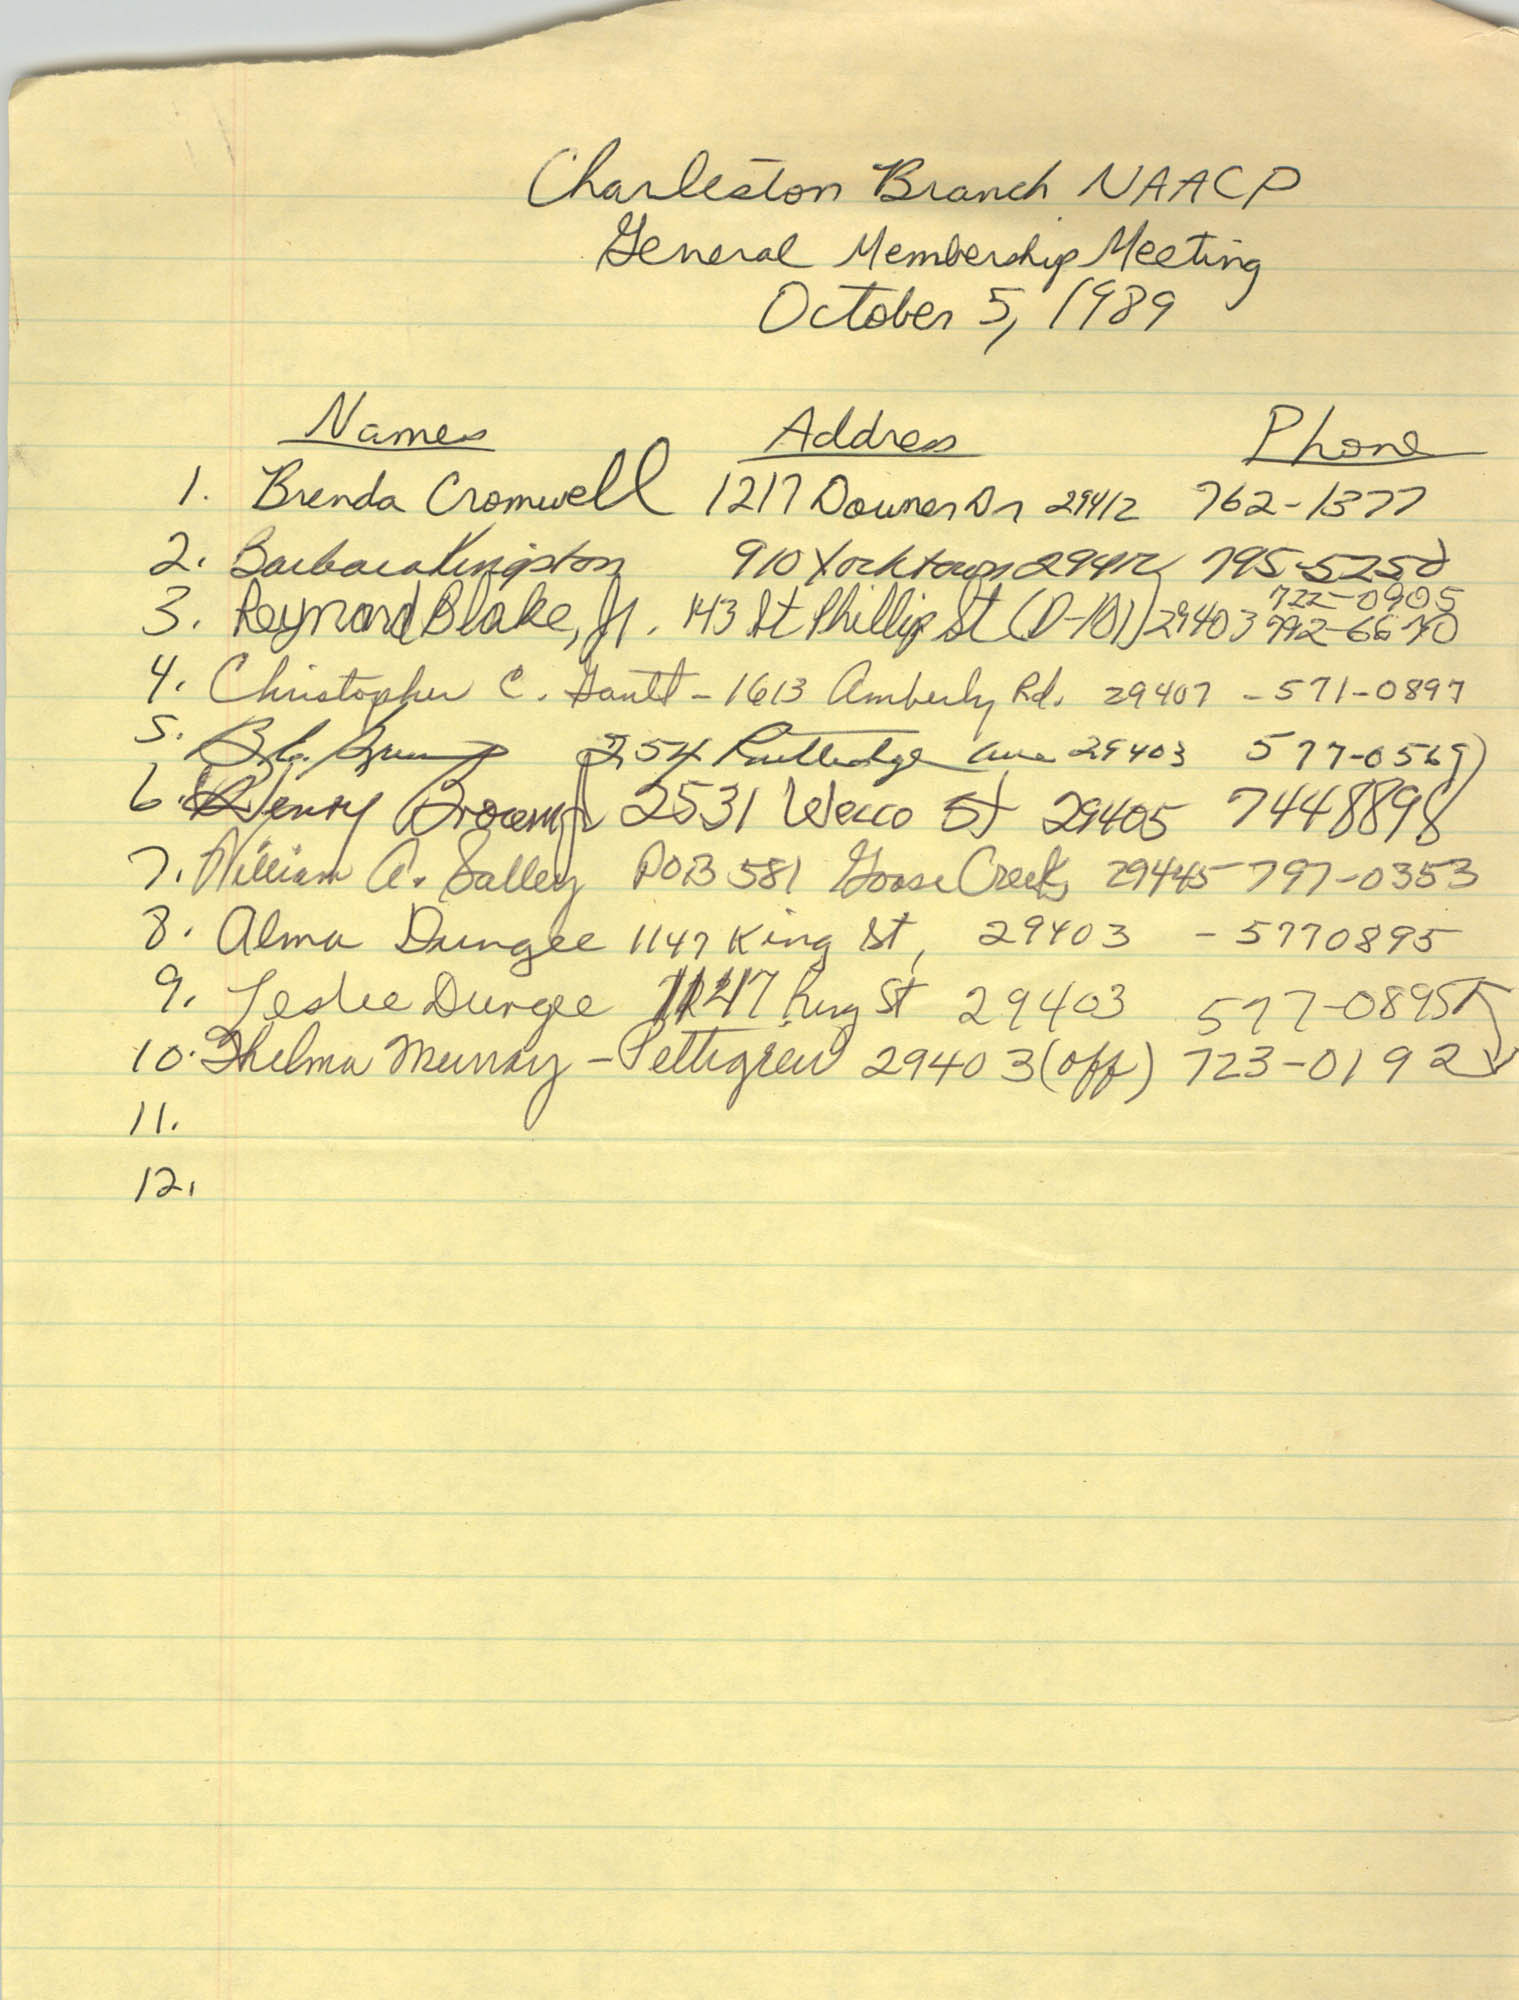 Sign-in Sheet, Charleston Branch of the NAACP, General Membership Meeting, October 5, 1989